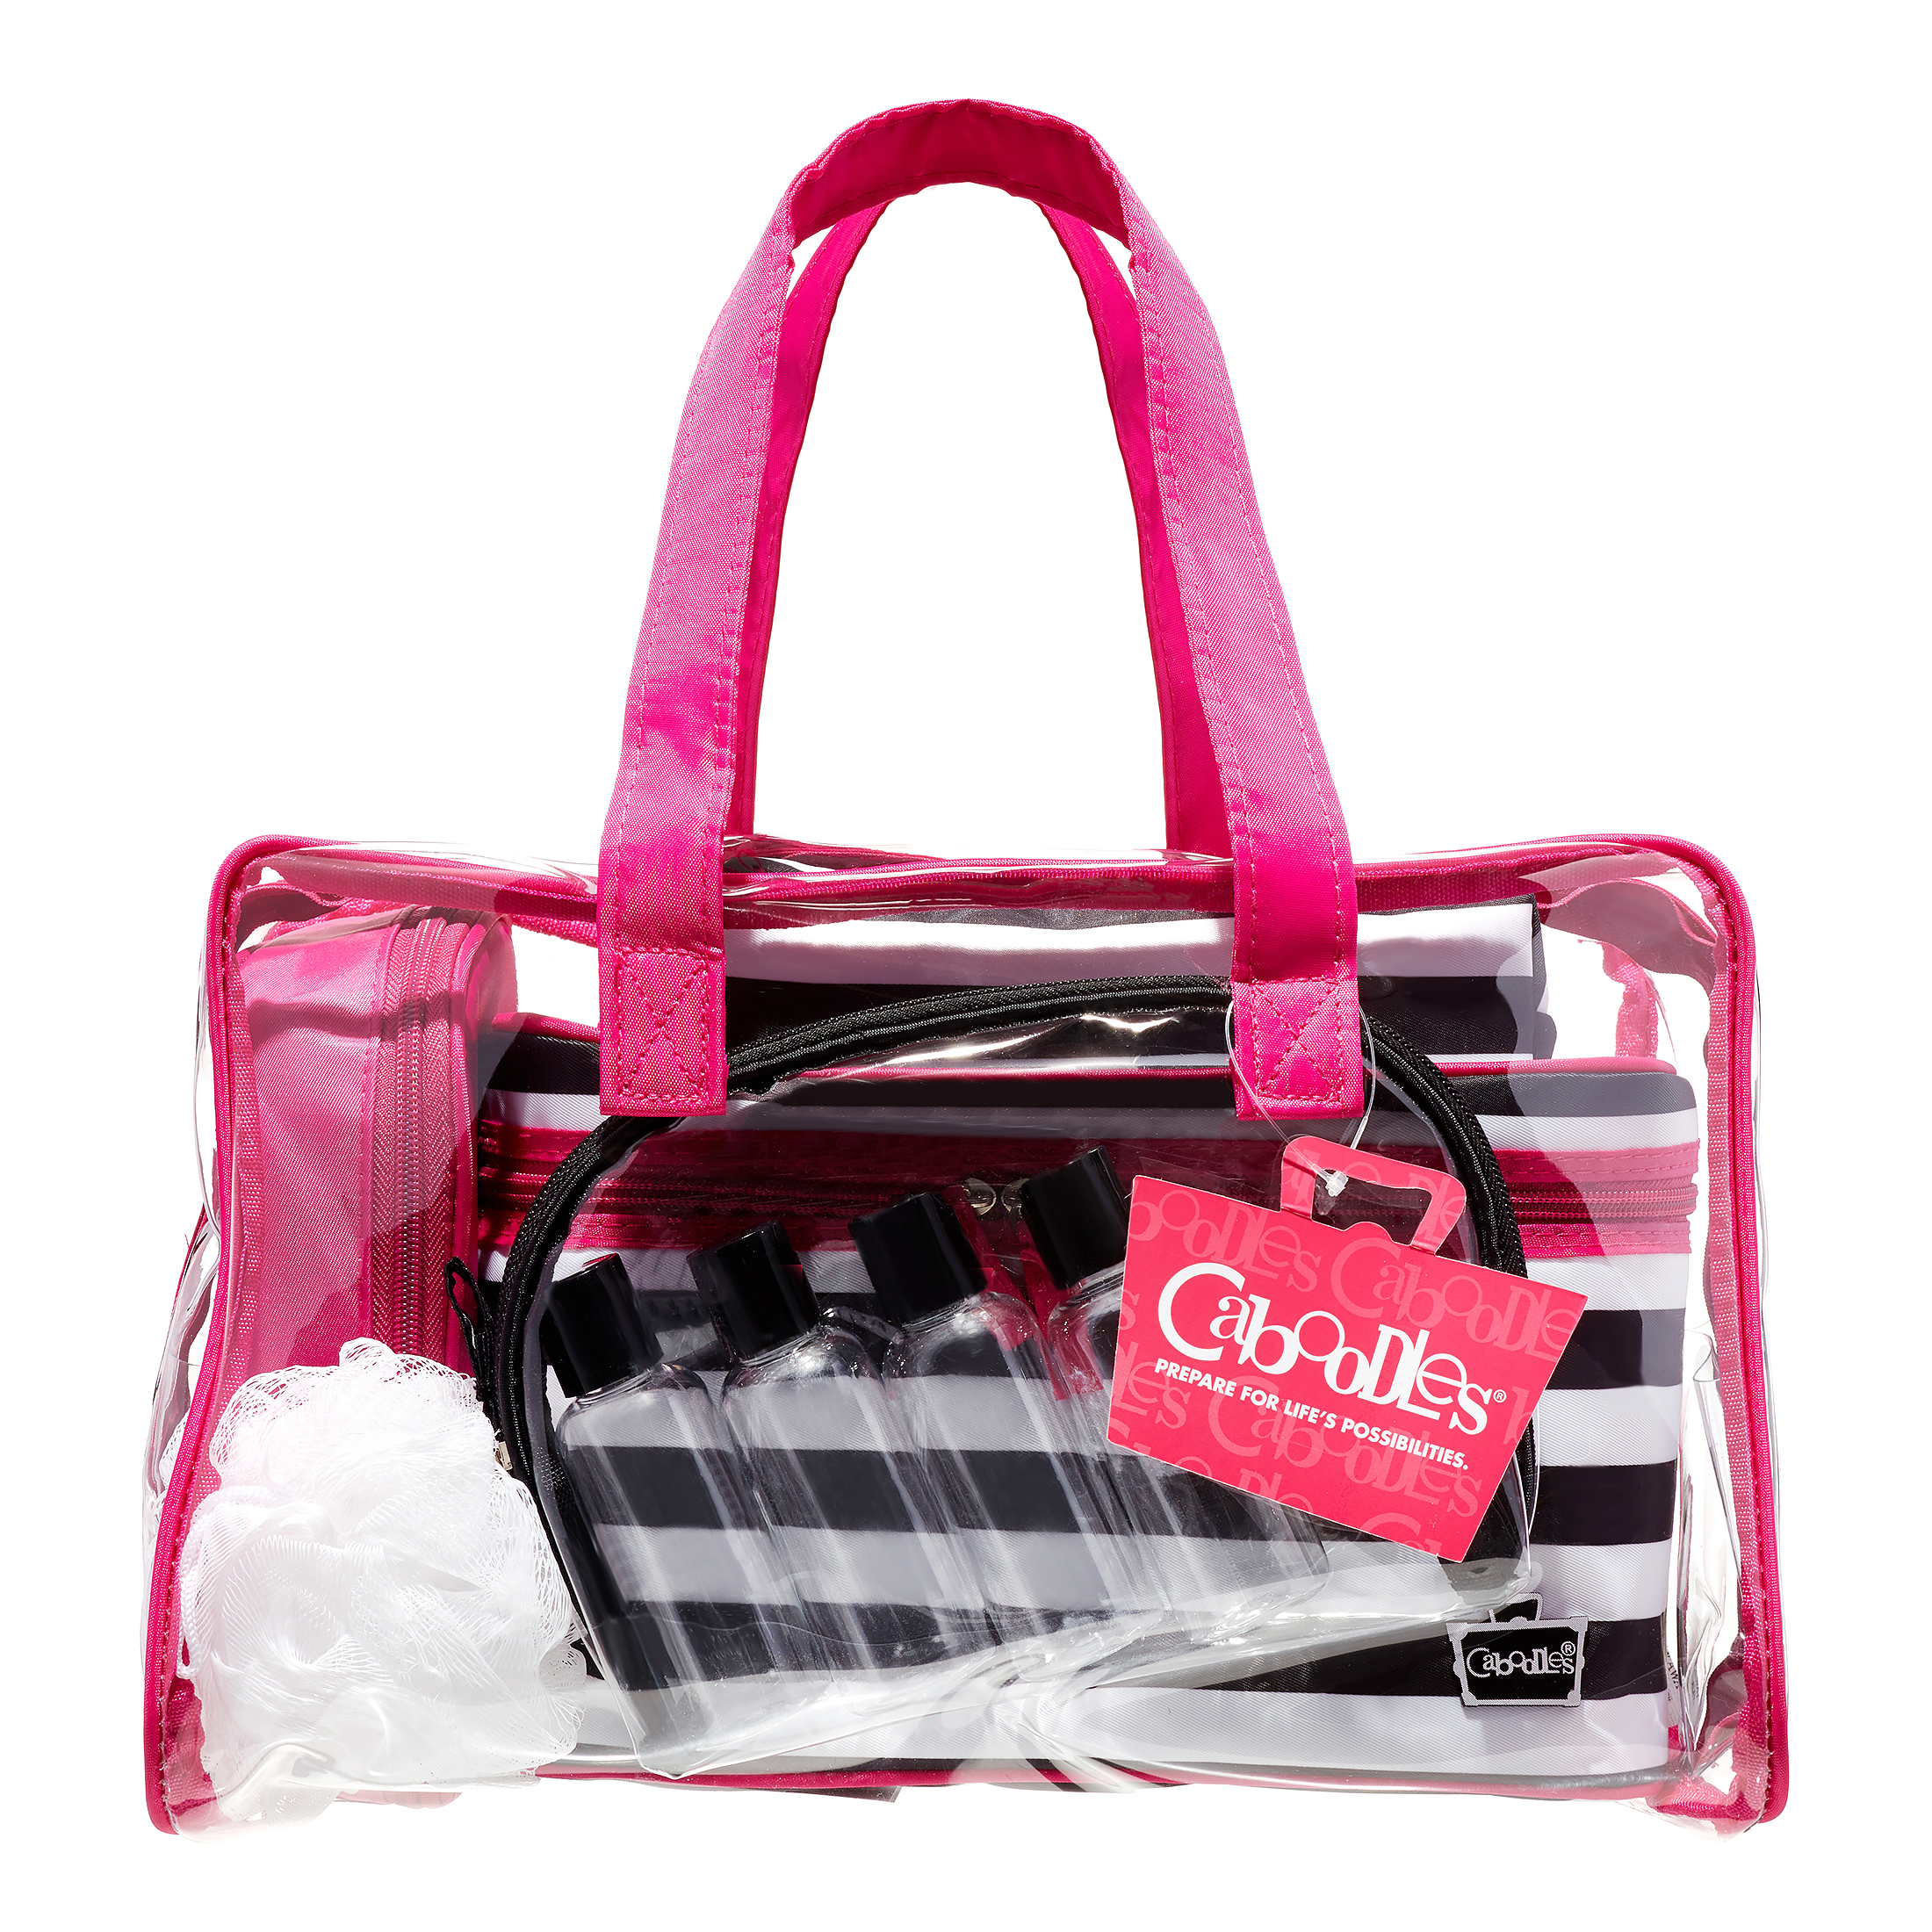 Caboodles Le Sophistique Ten Piece Cosmetic Bag Set